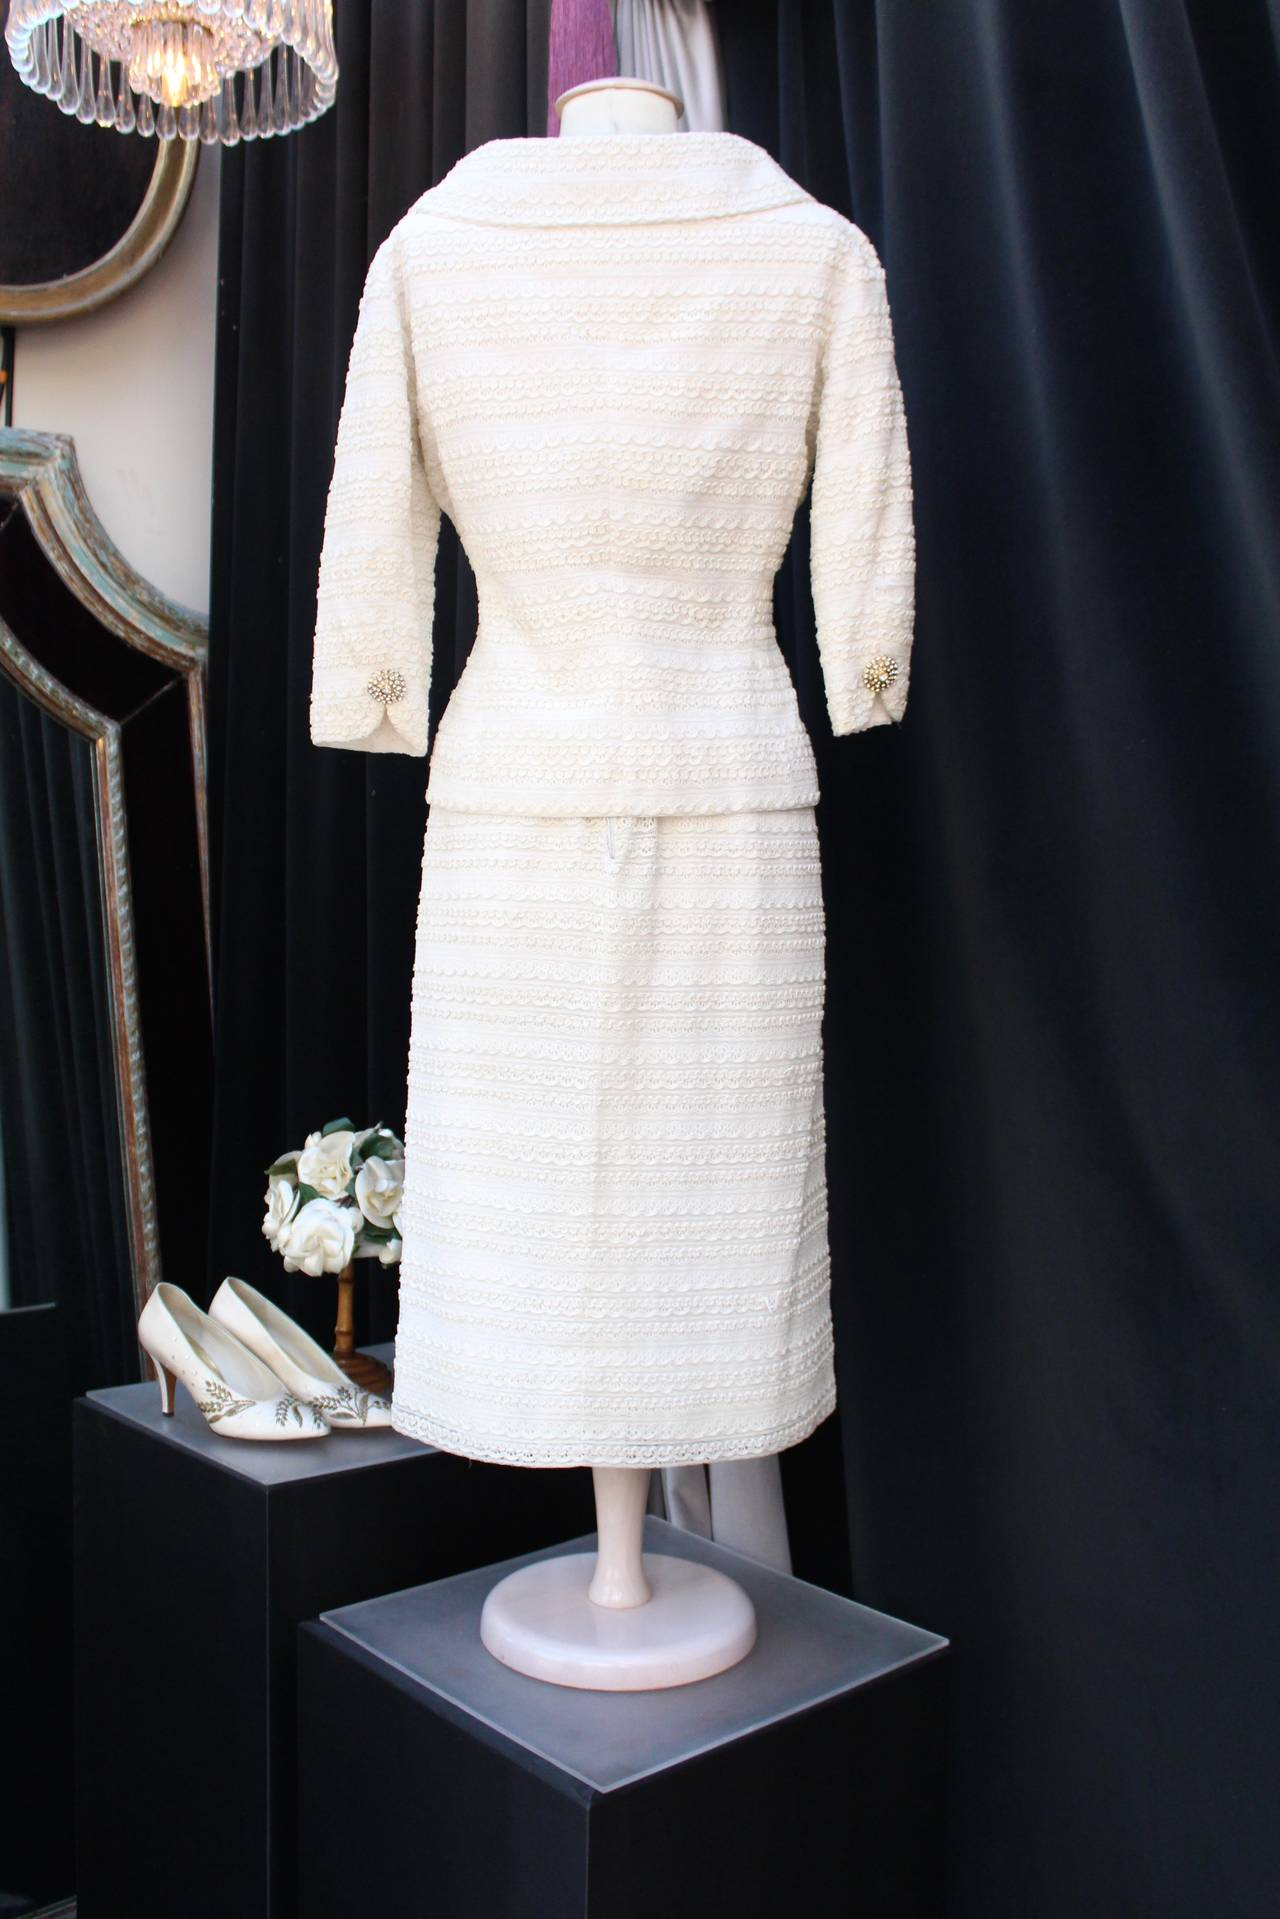 Gray 1961 Carven Haute Couture White Lace Dress and Jacket Ensemble For Sale